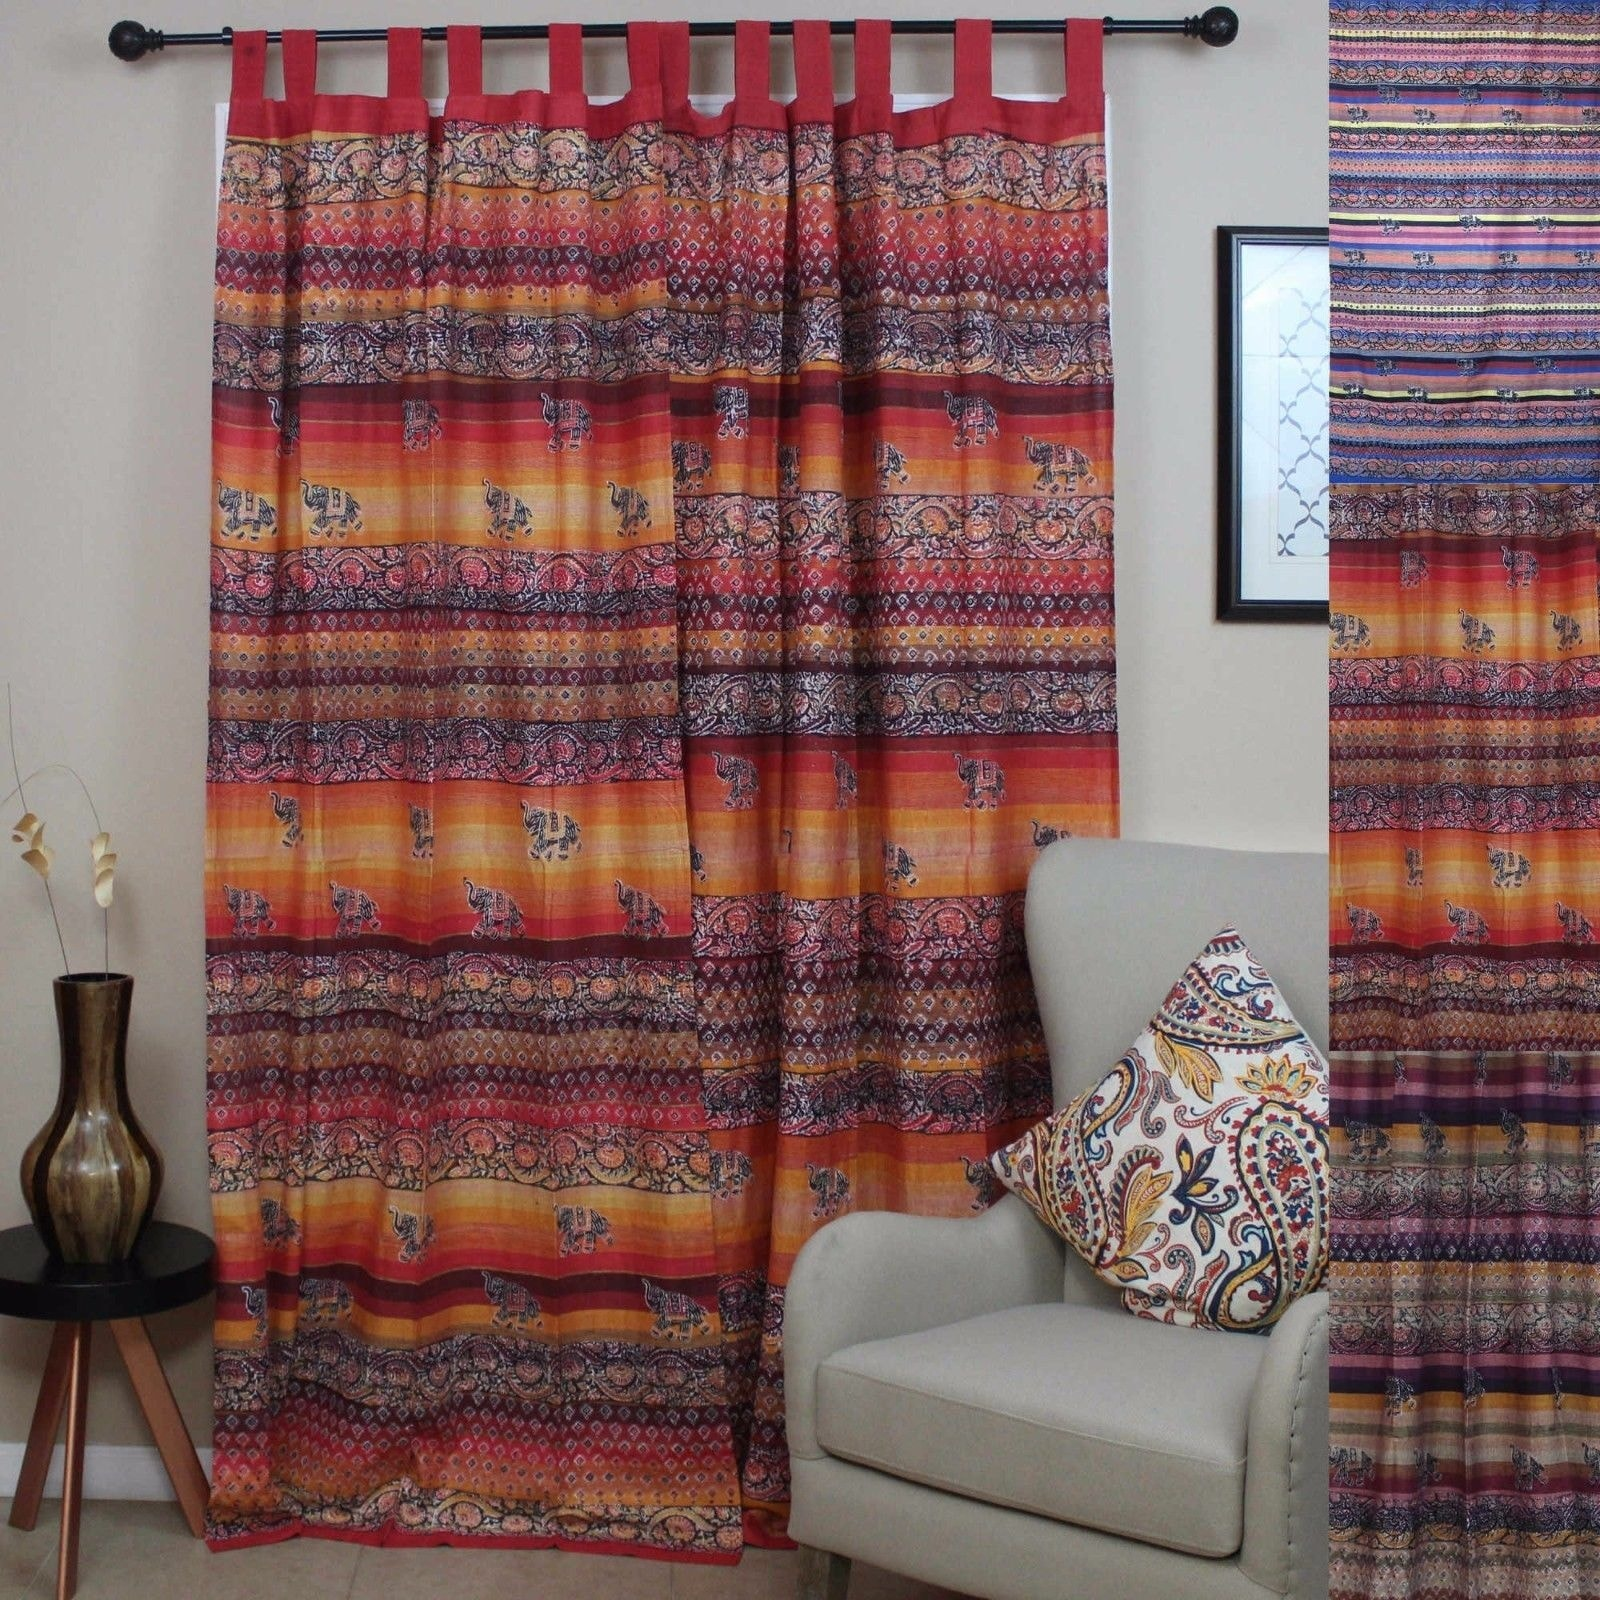 Handmade Cotton Tab Top Curtain Drape Panel Paisley Good Luck Elephant Available in 3 colors - Cranberry Red Blue & Orange - Thumbnail 0